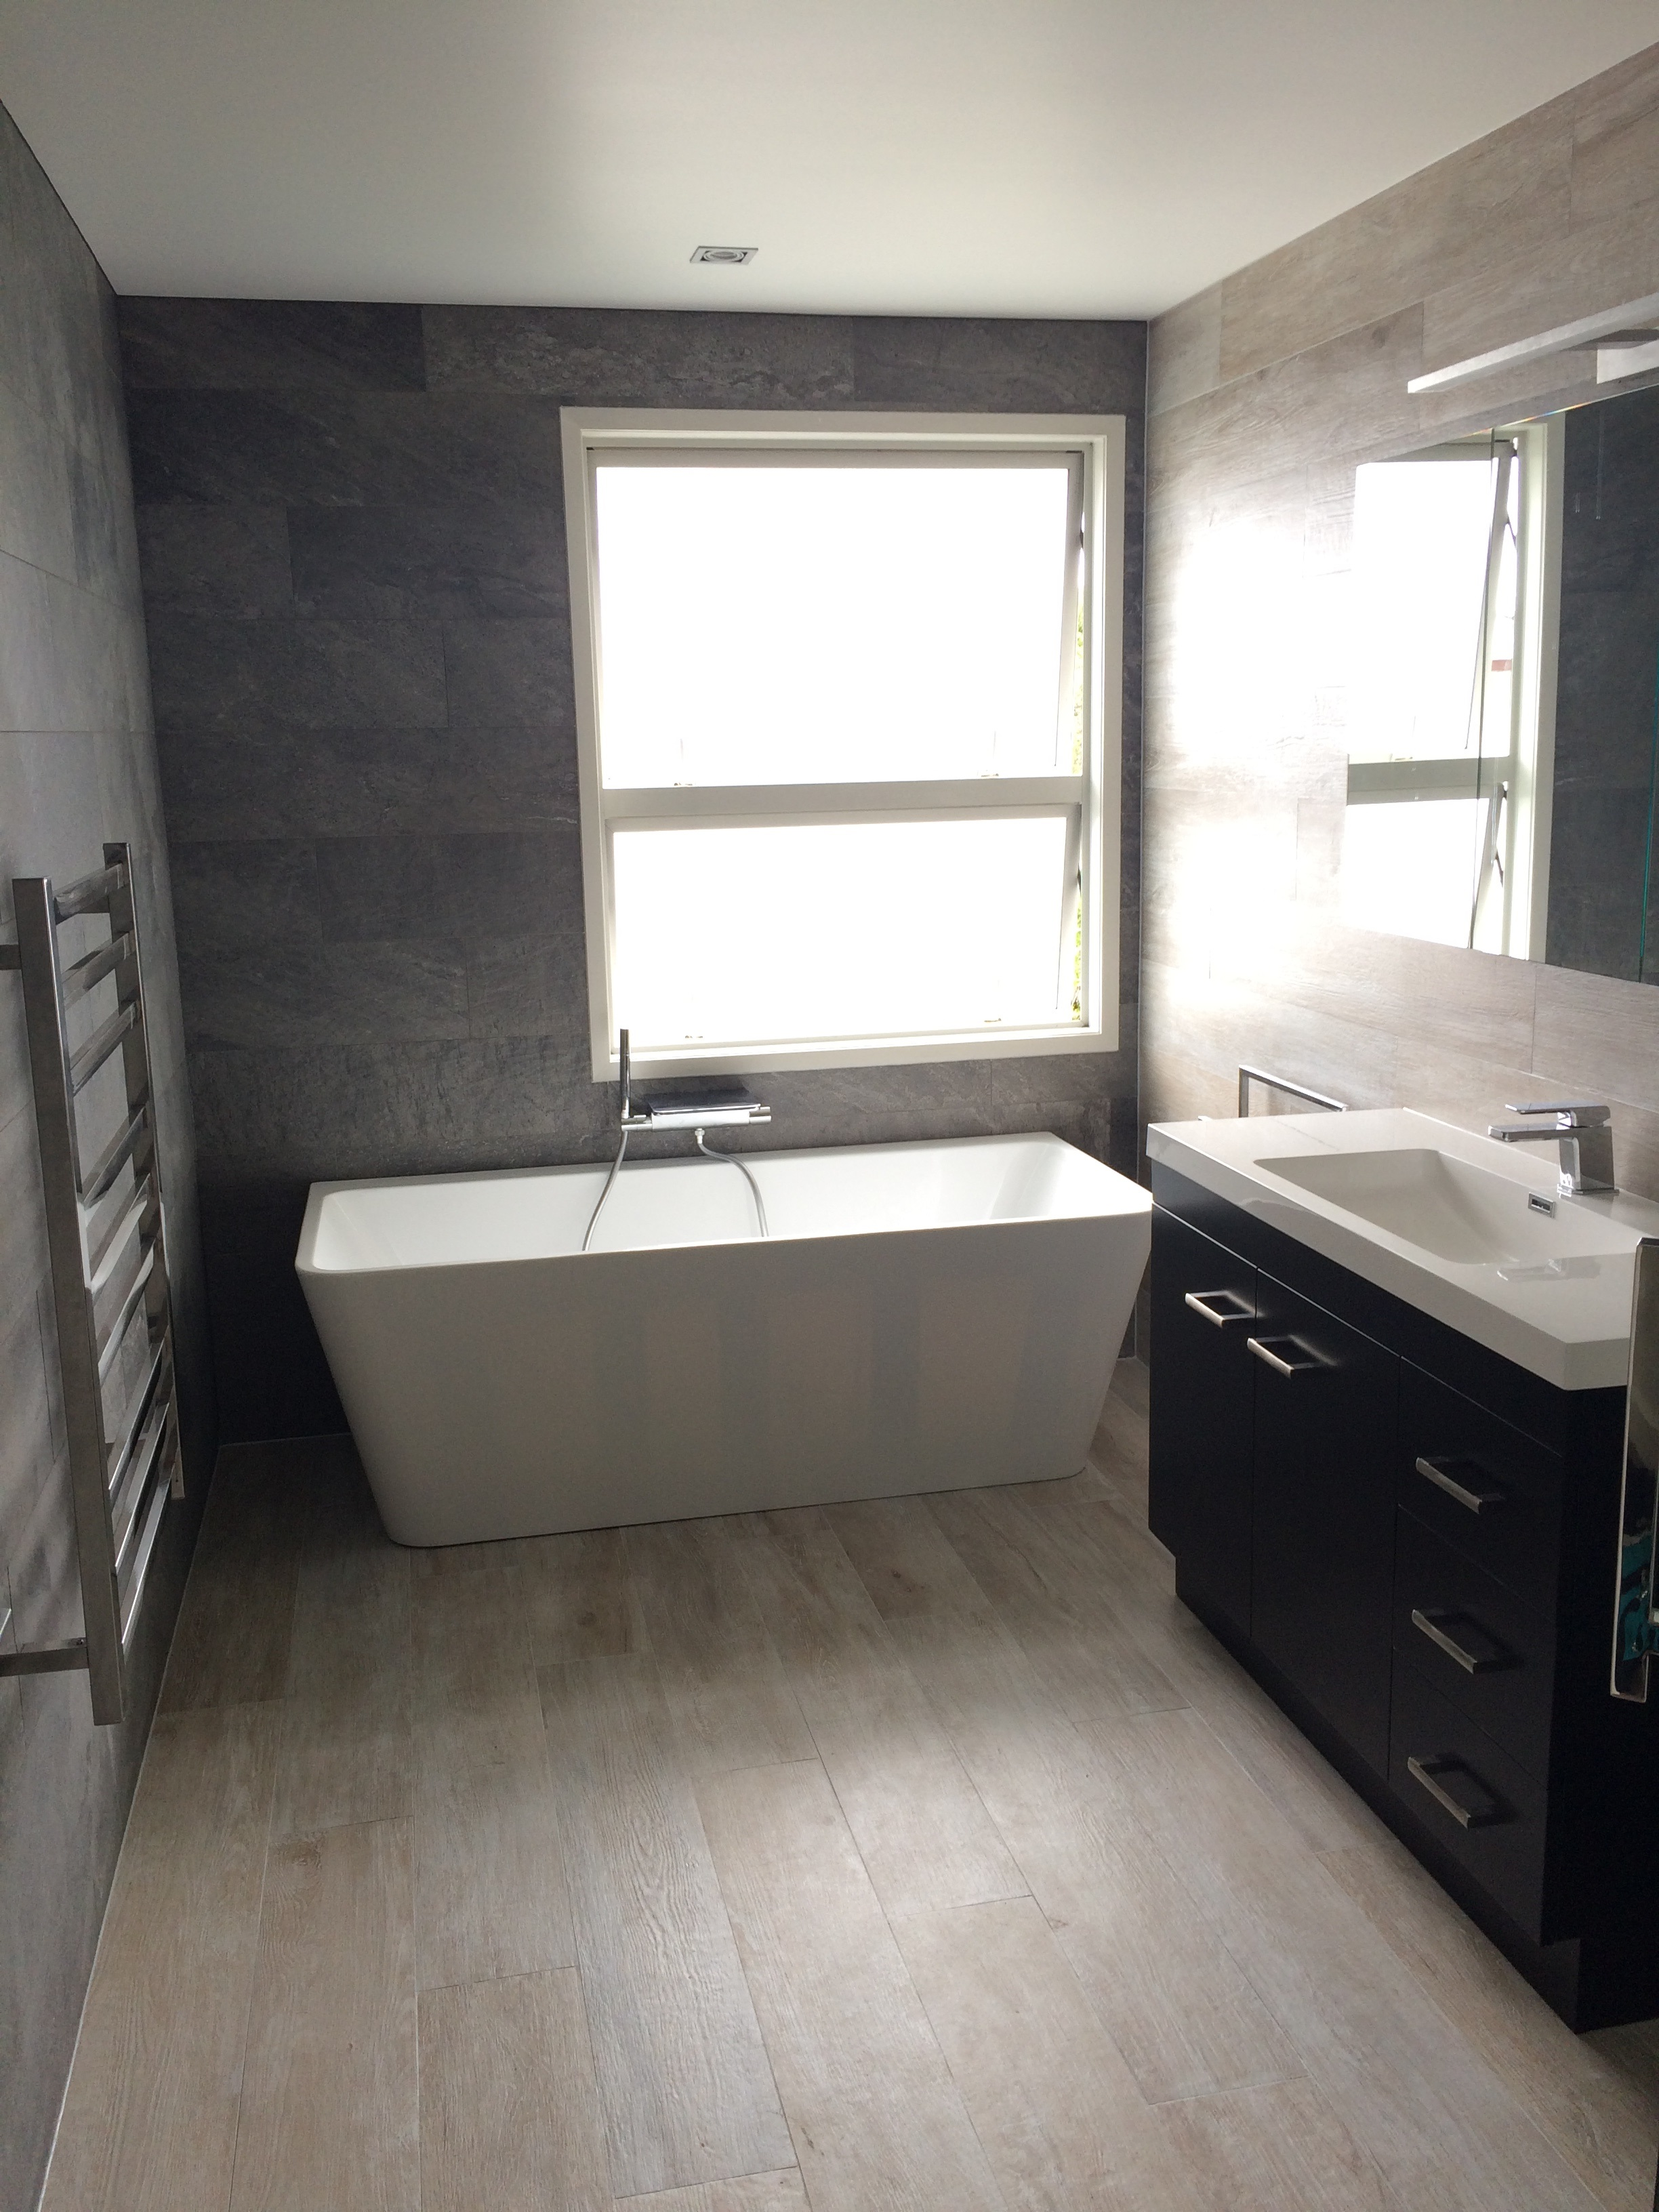 New in Hauraki Bathroom renovation photo